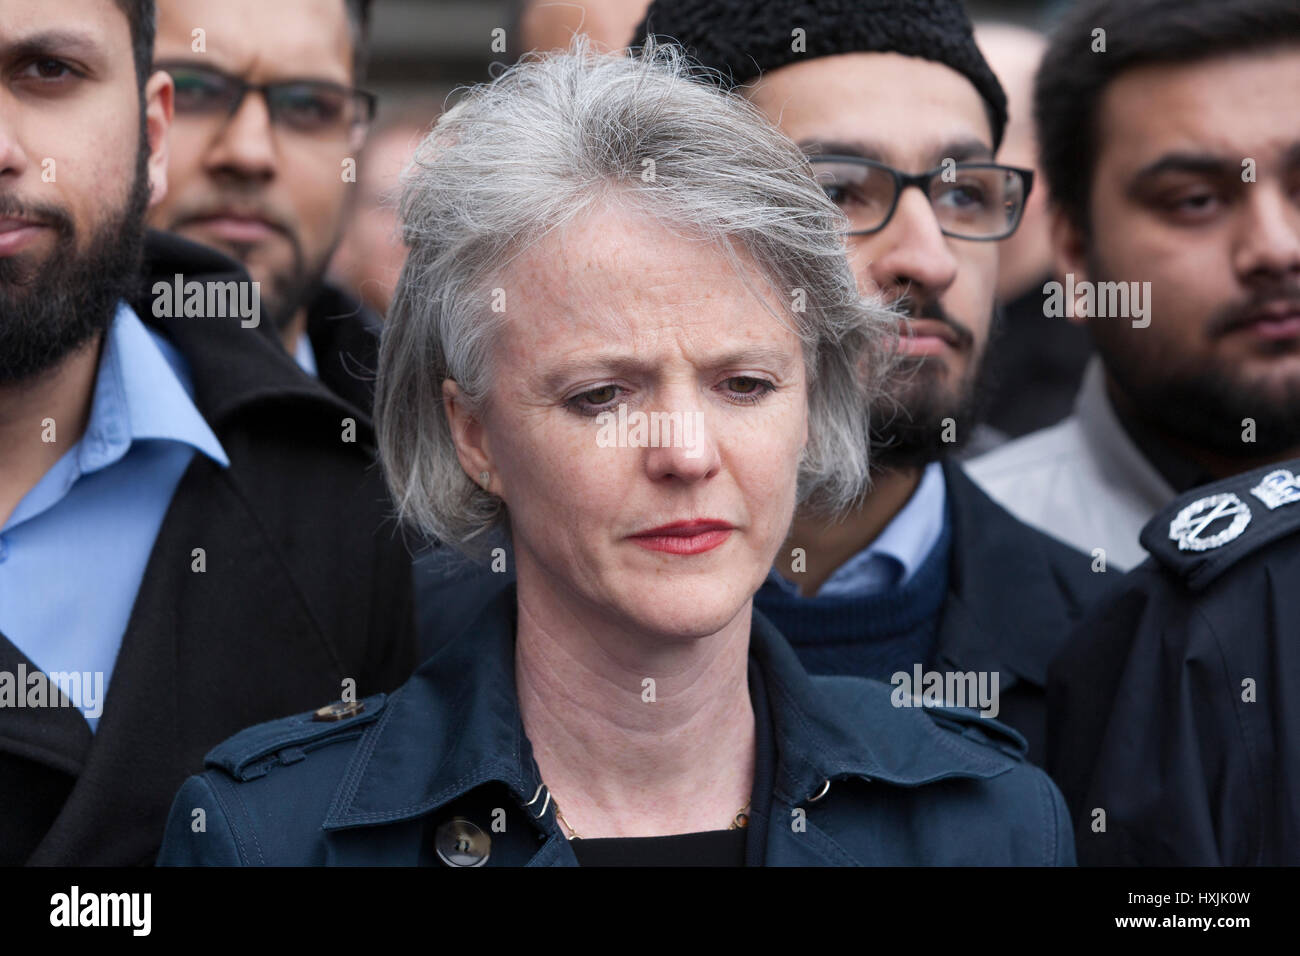 Westminster Bridge, London, UK. 29th Mar, 2017. Sophie Linden is a British politician, and currently the Deputy - Stock Image